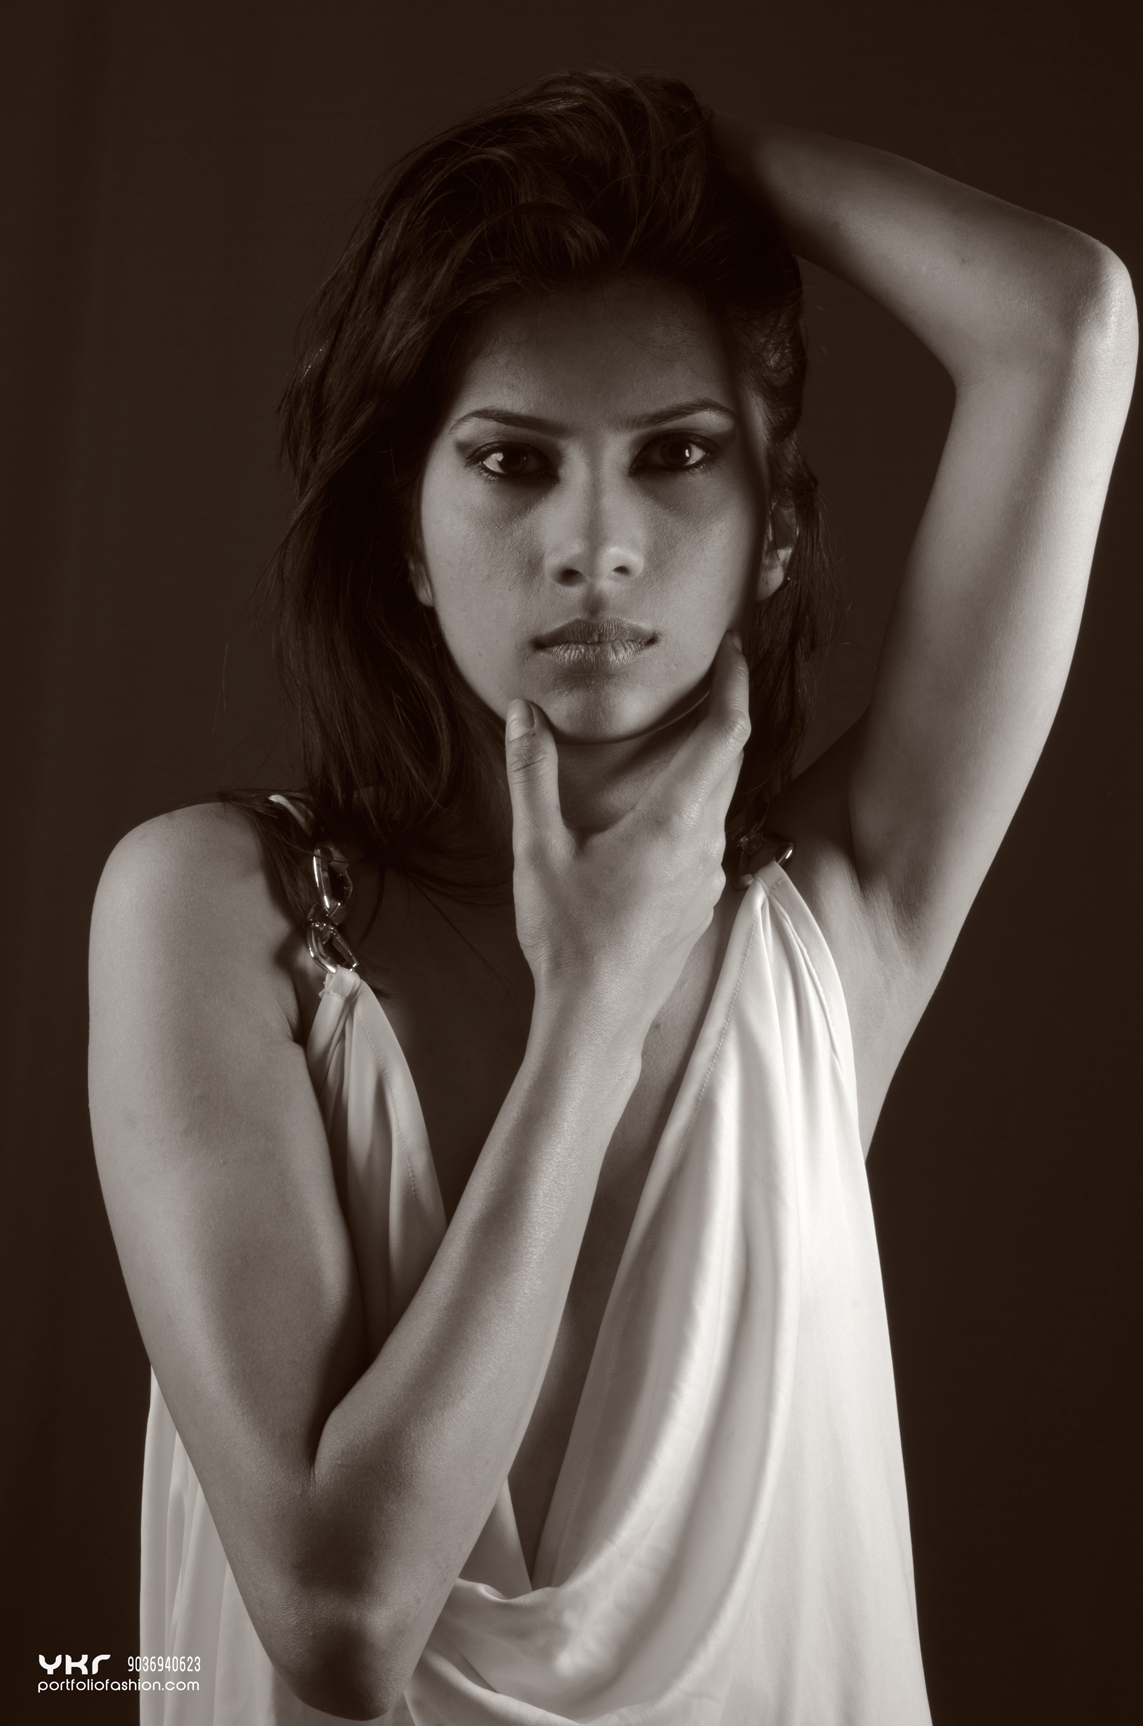 International Female Portfolio, best bombay model, modeling photography, portfolio, best modeling photography